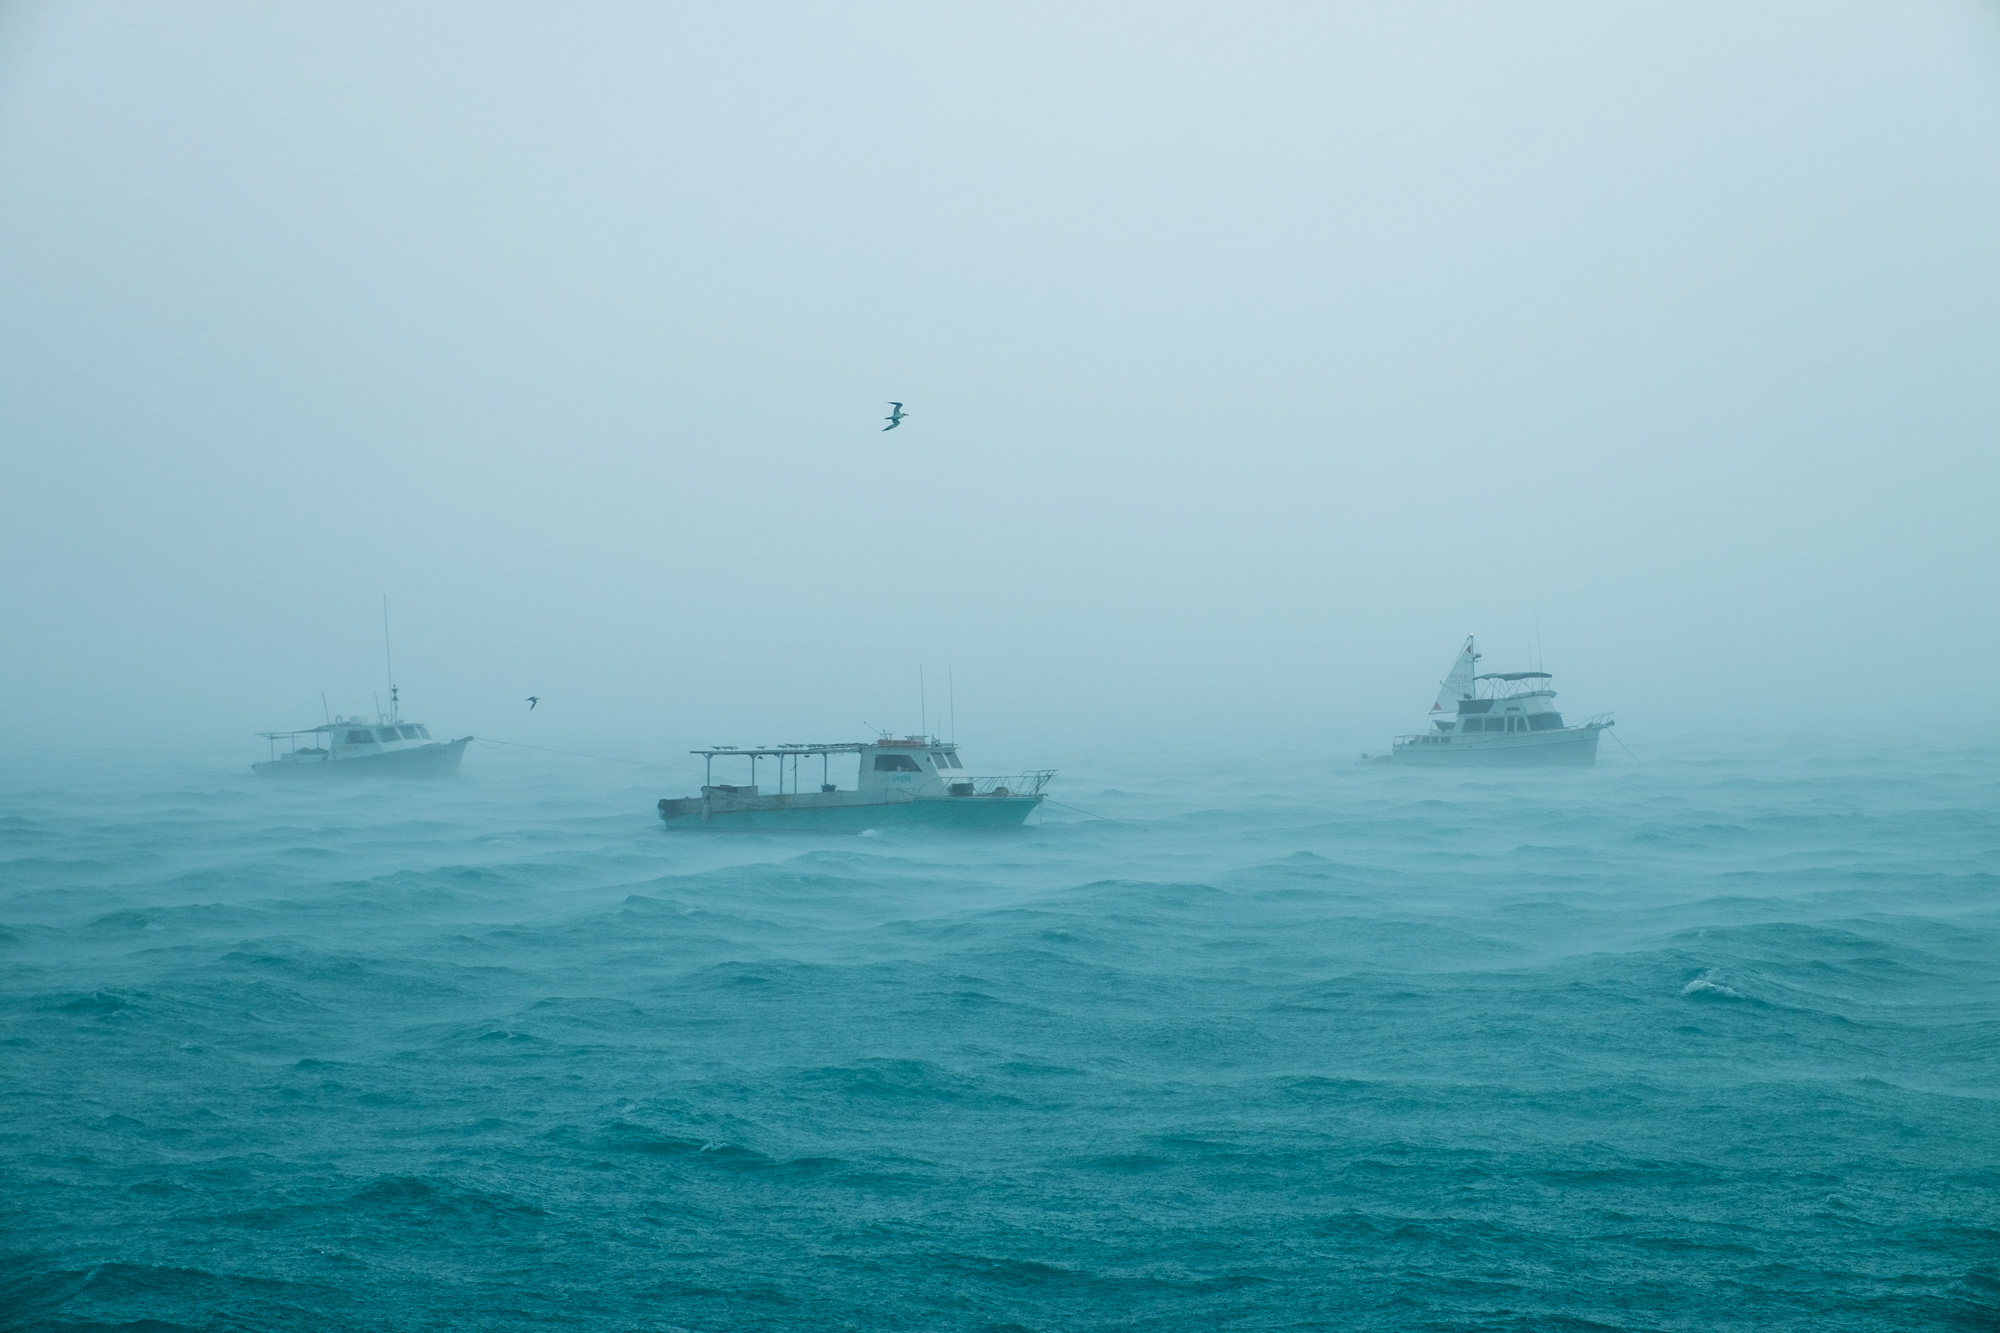 Boats anchored on the harbor for safety in the driving winds and rain.